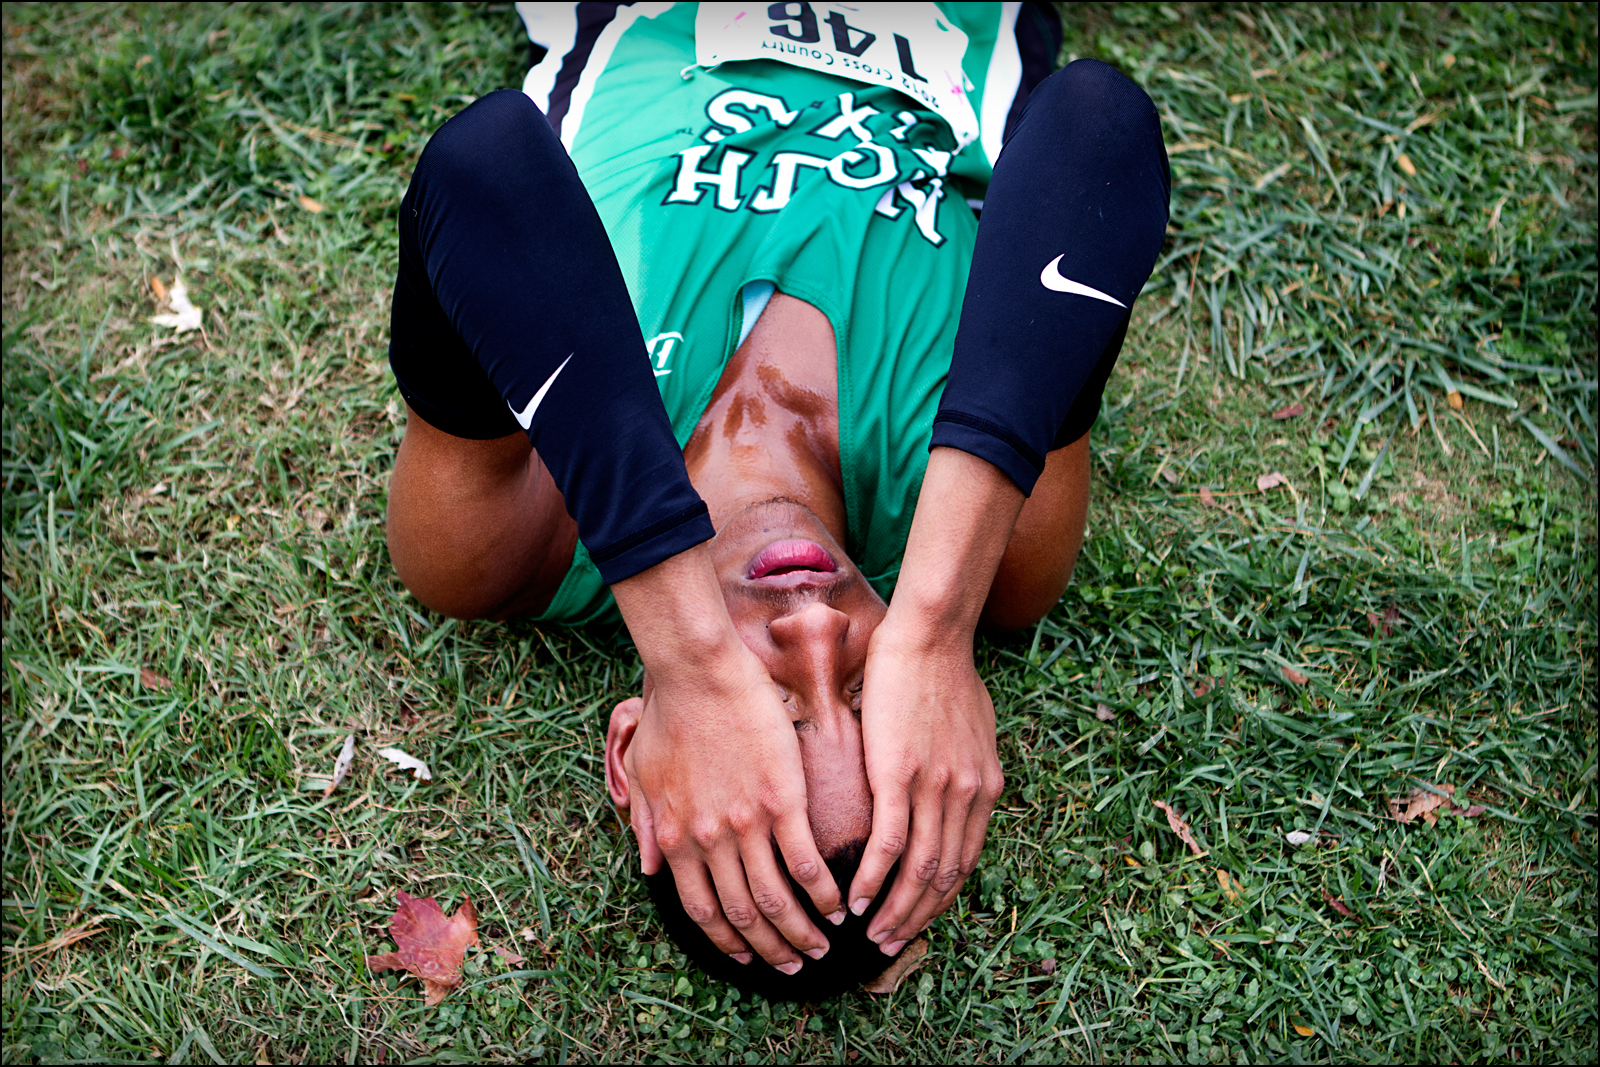 University of North Texas Silvester Harrison collapses onto the ground after finishing the mens 8K run at the Sun Belt Cross Country Championships held at Kereiakes Park in Bowling Green, KY. Harrison finished 21st to help his team finish first place in the competiton.